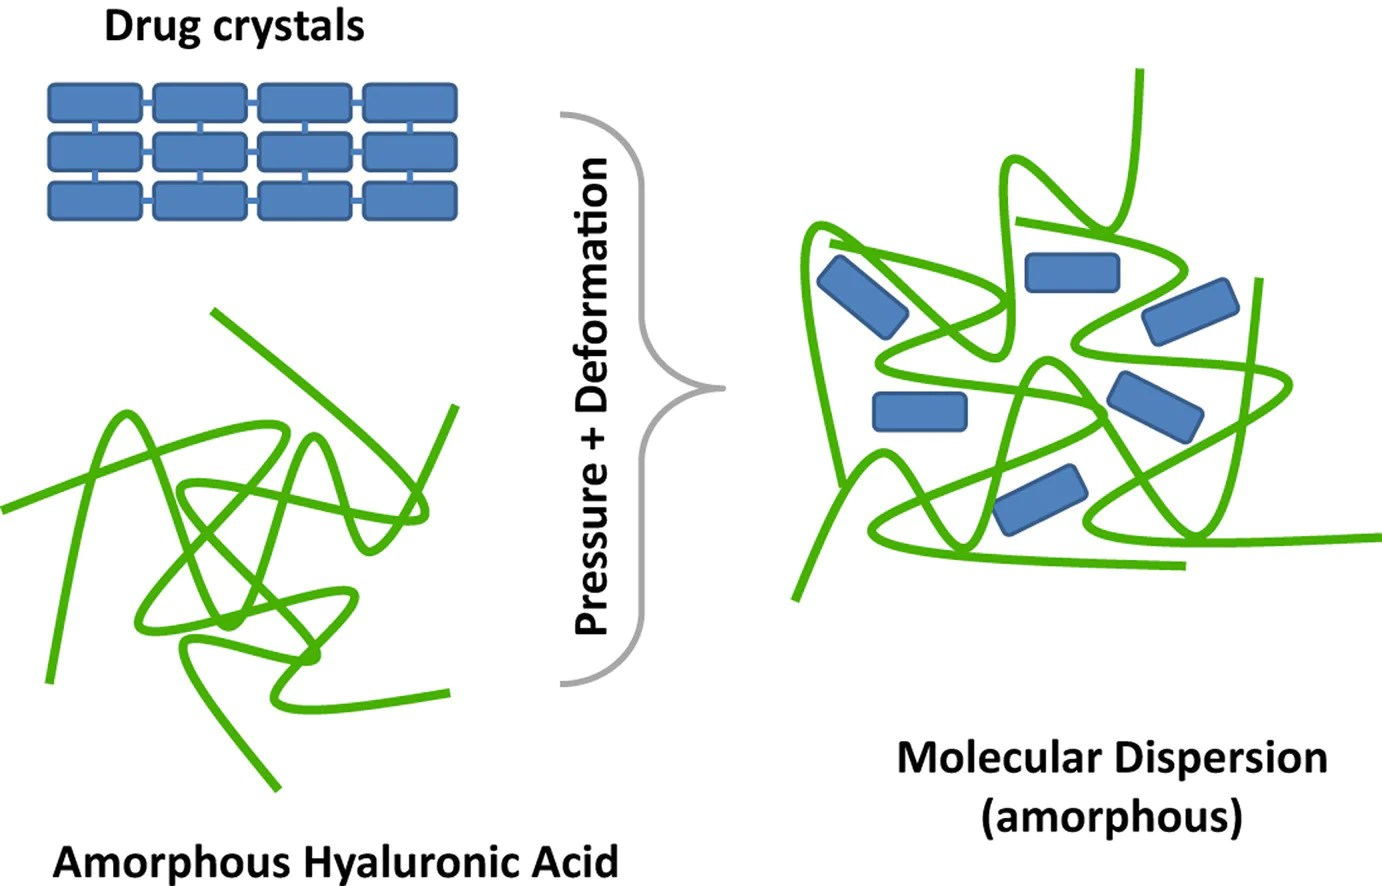 solid dispersions of drugs in hyaluronan matrix anti aging bioavailability hyaluronic acid  [ 1382 x 886 Pixel ]